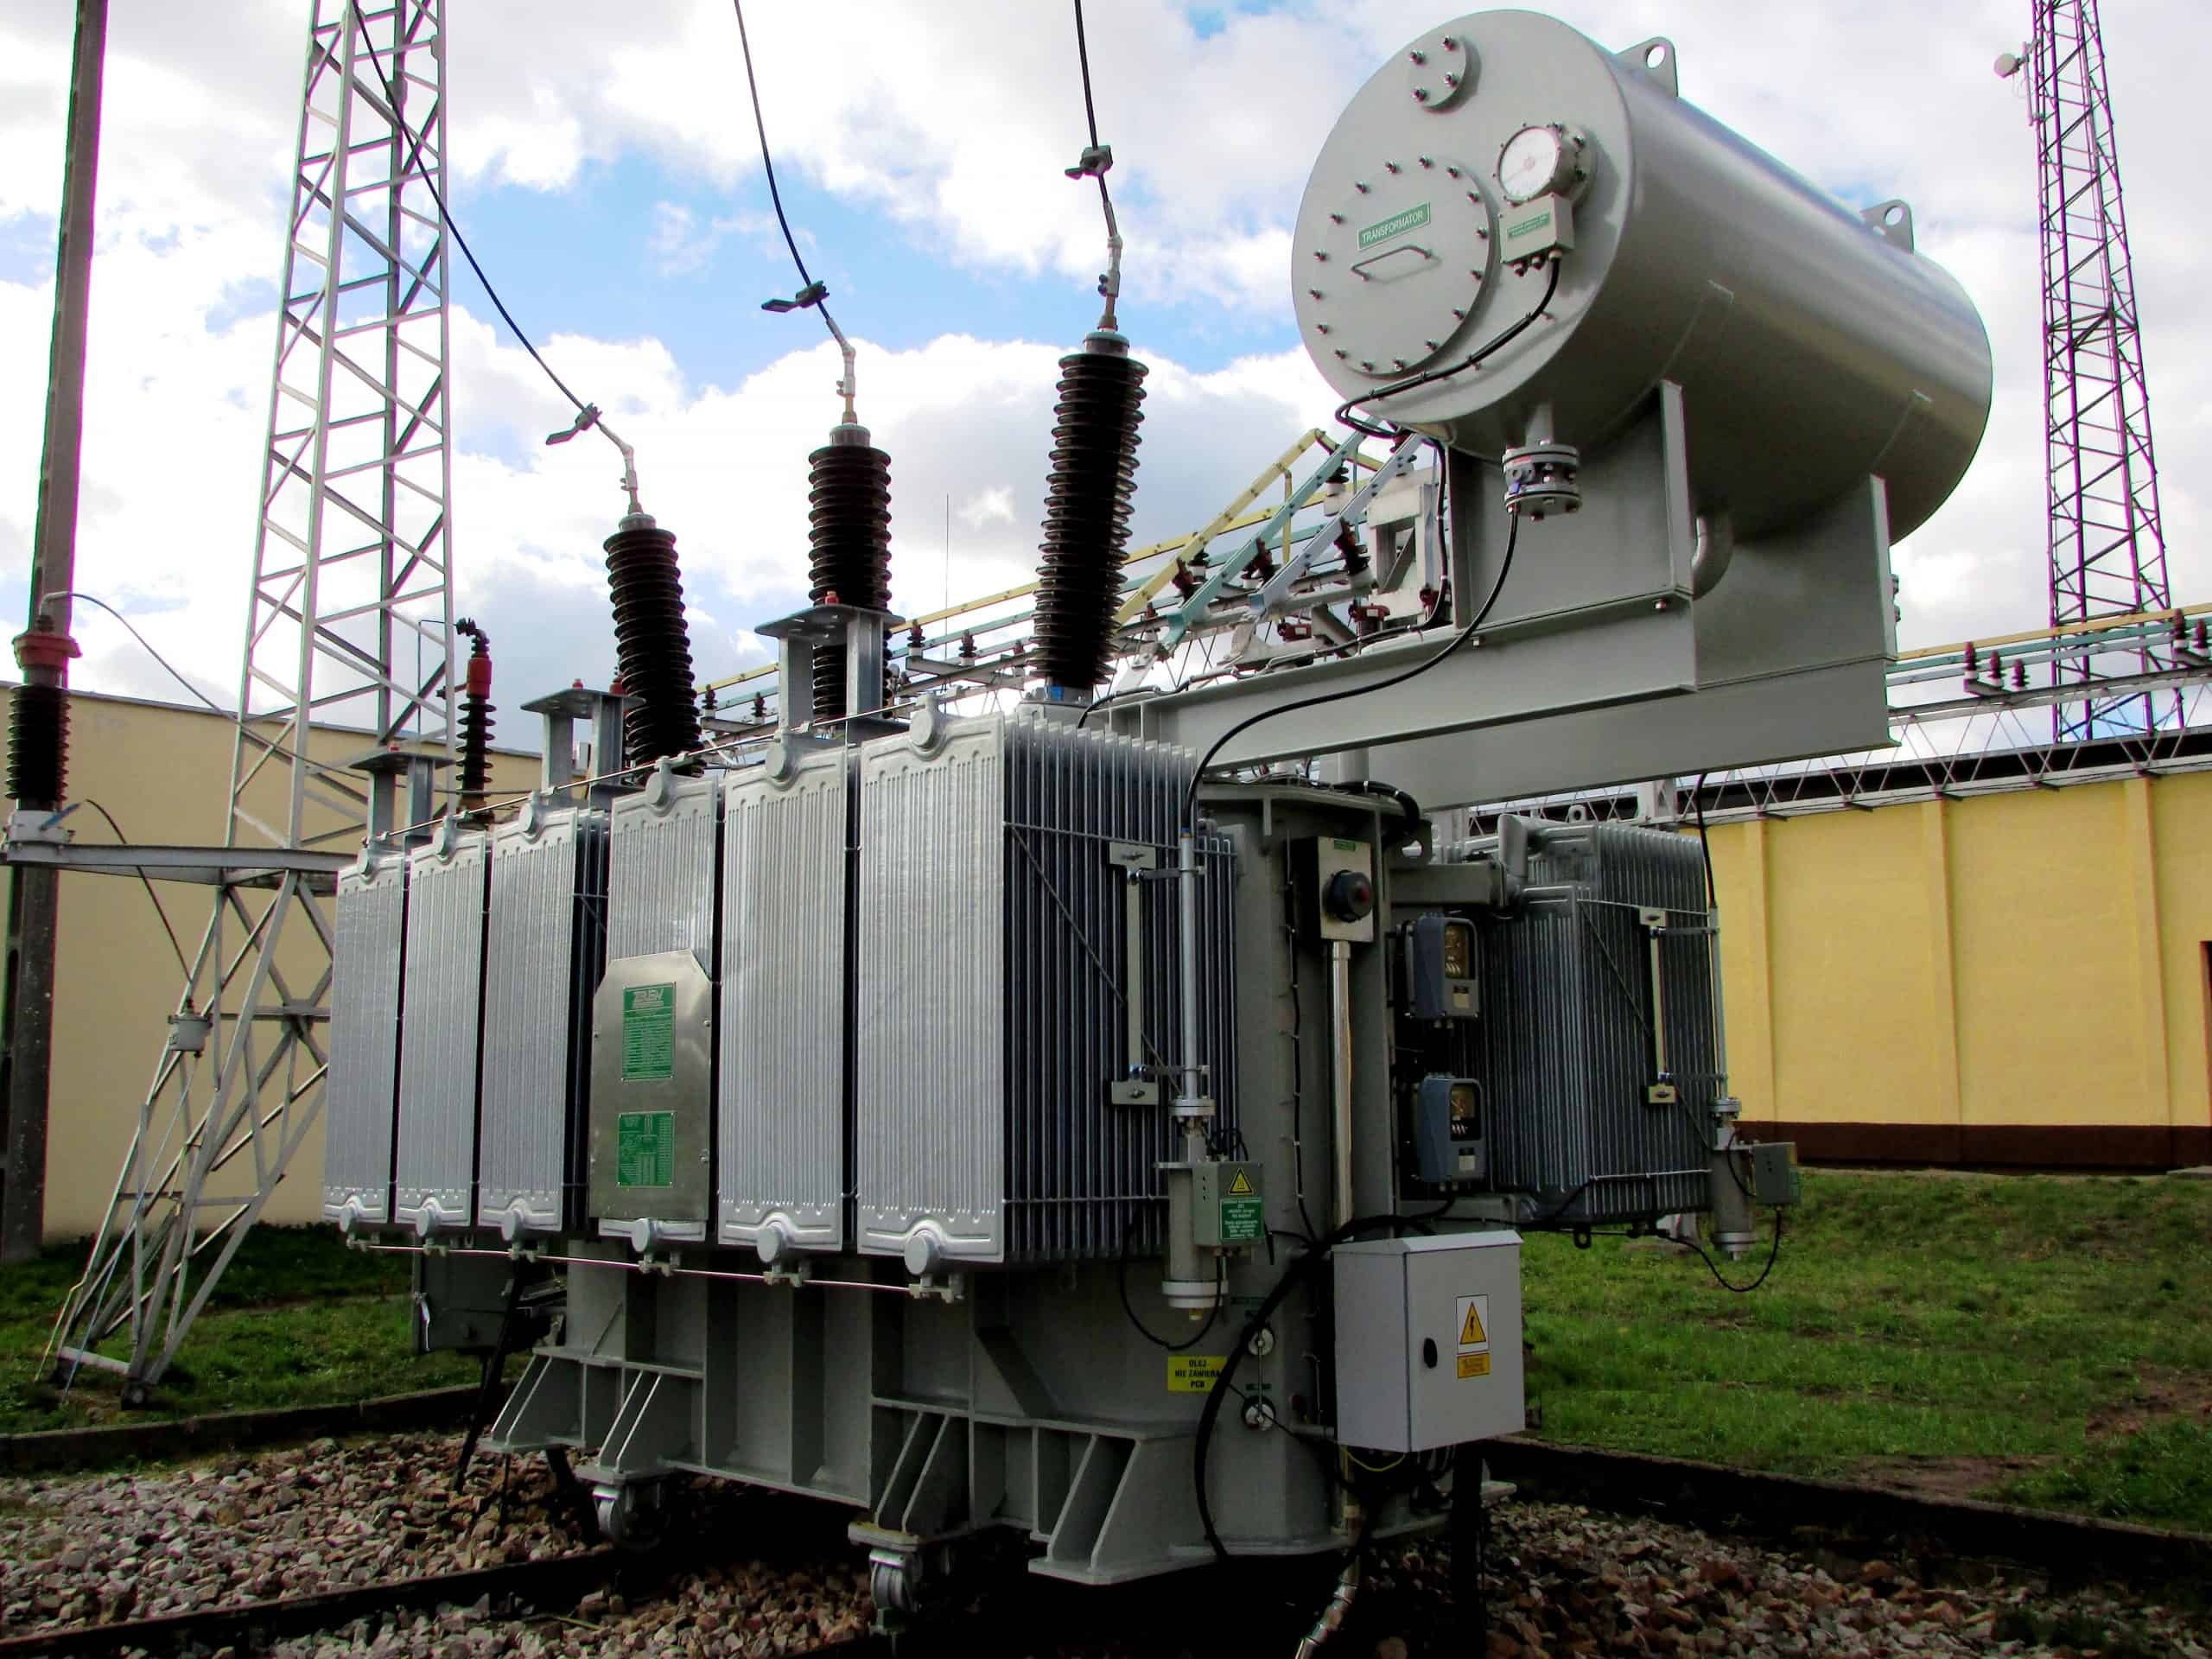 Invites Latest Rajasthan tender for Painting Work Of Power Transformer And Other Equipments